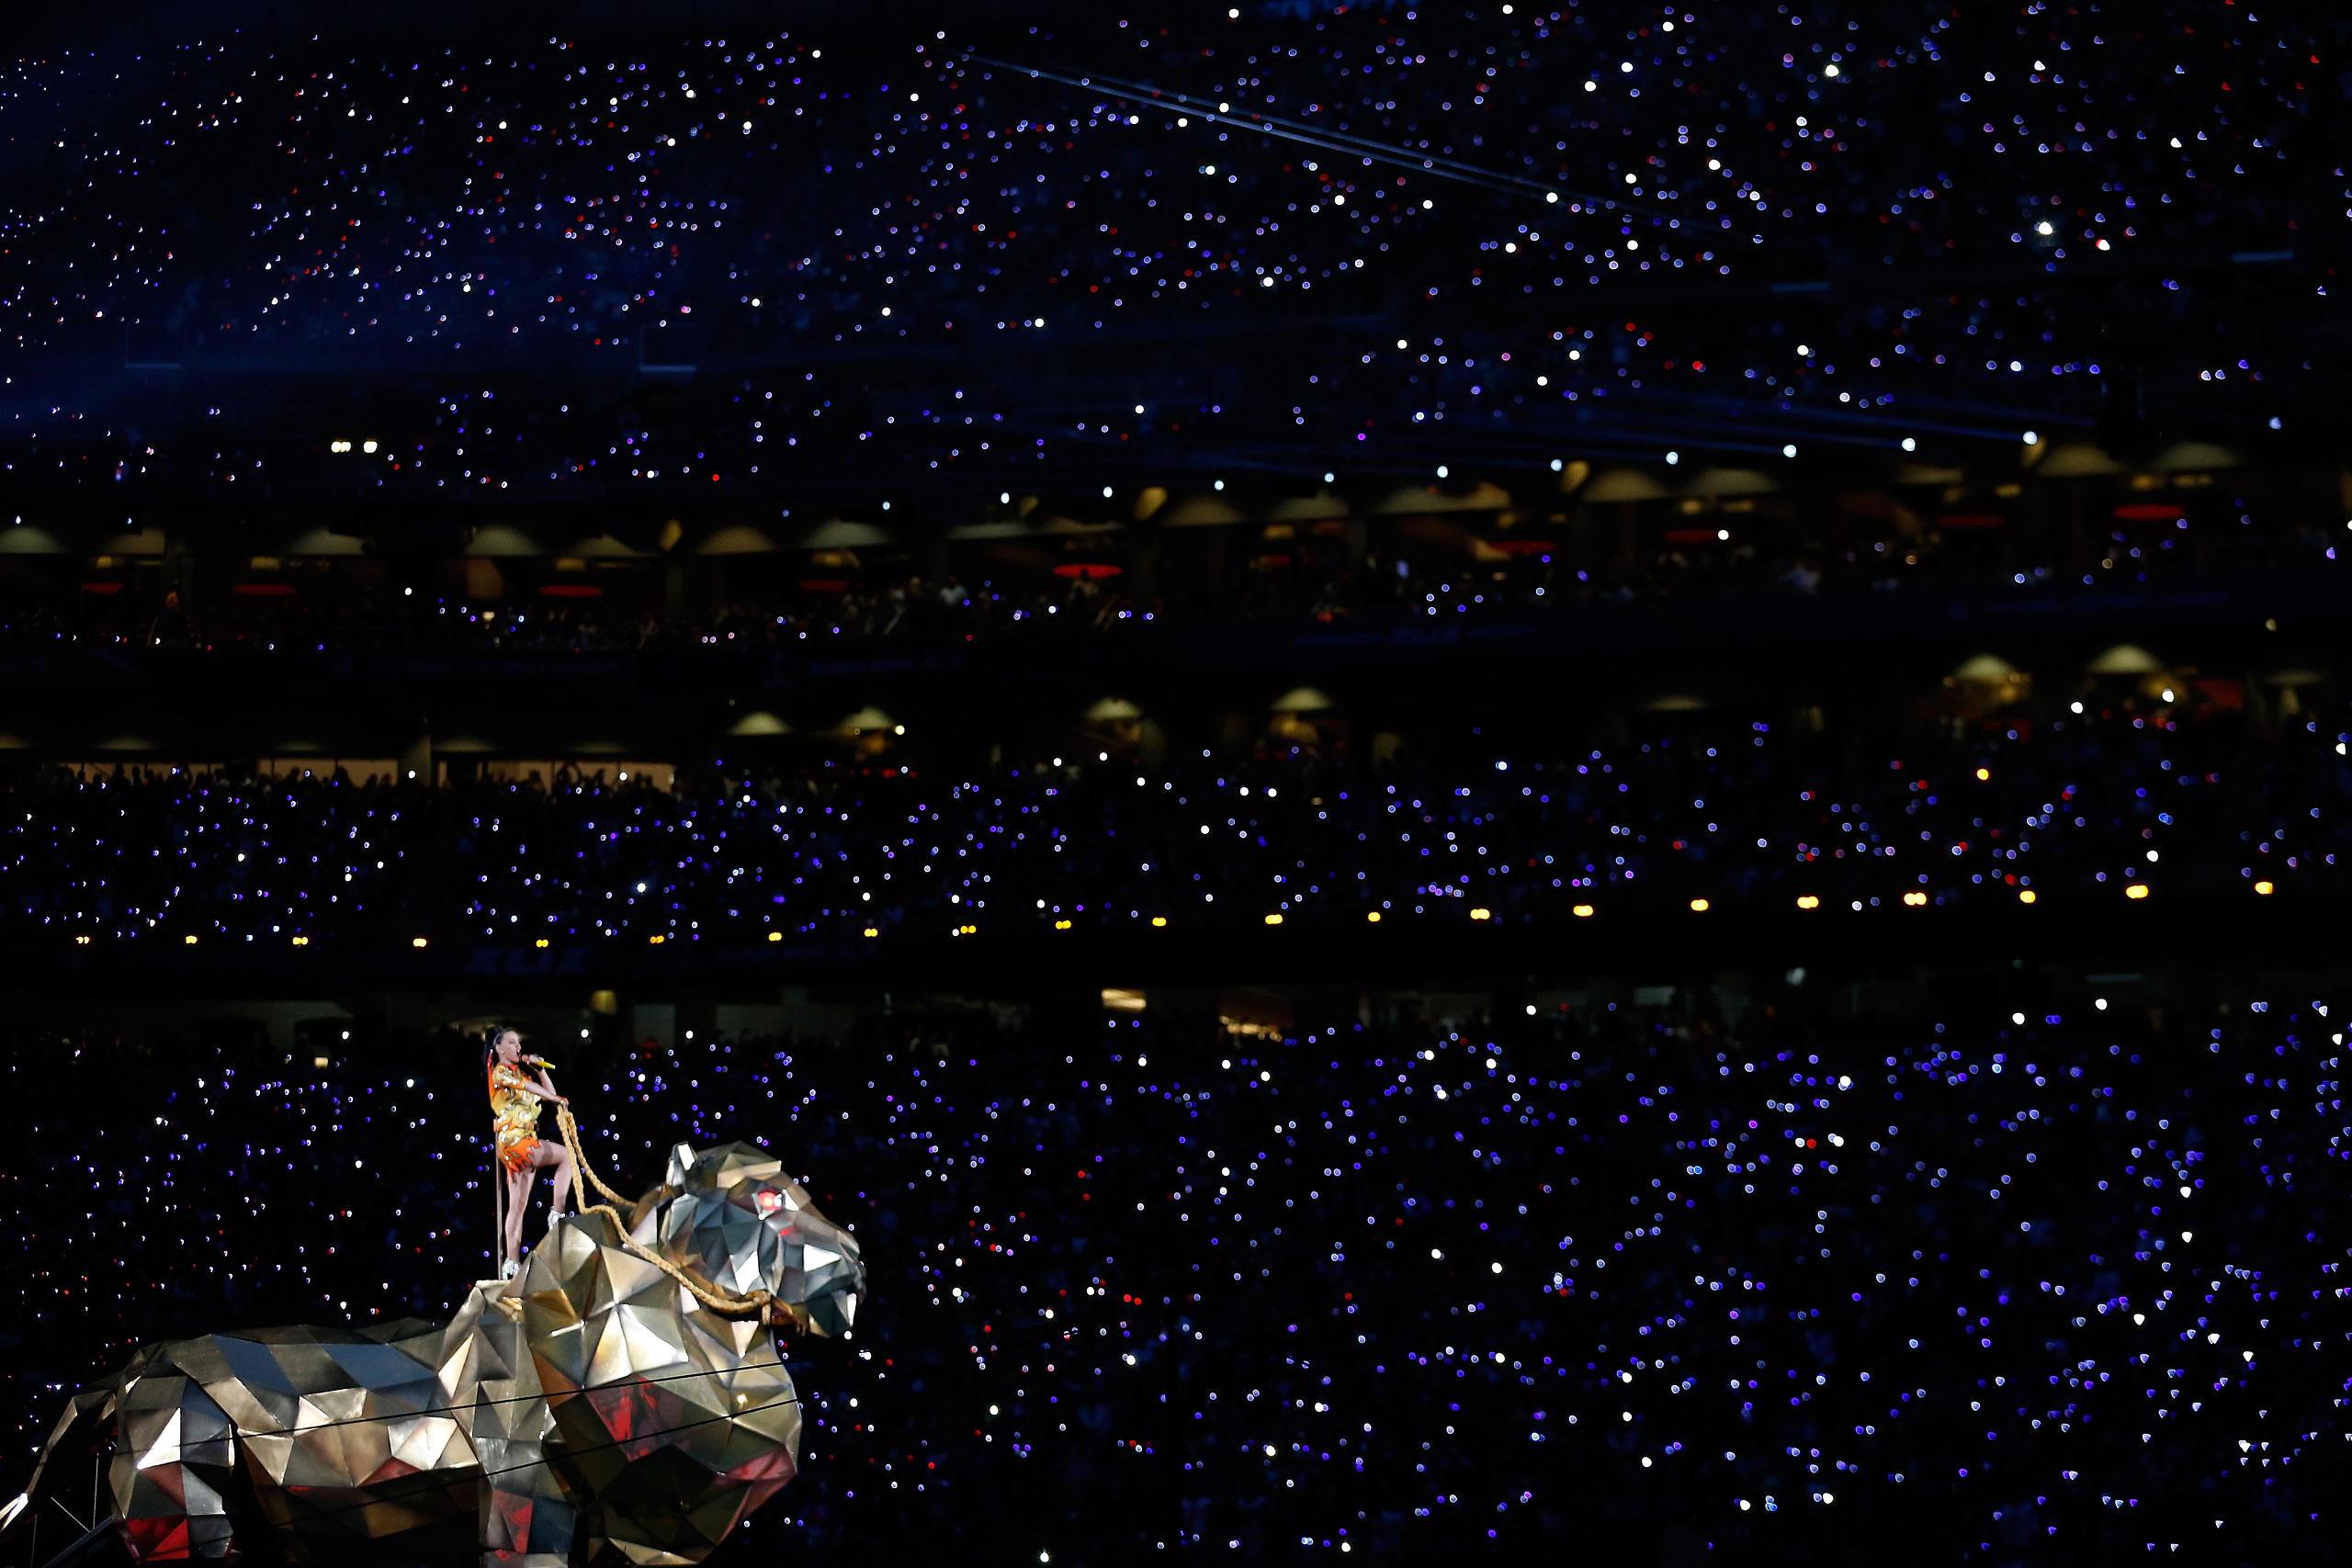 Katy Perry performs during the Pepsi Super Bowl XLIX Halftime Show at University of Phoenix Stadium on Feb. 1, 2015 in Glendale, Ariz.